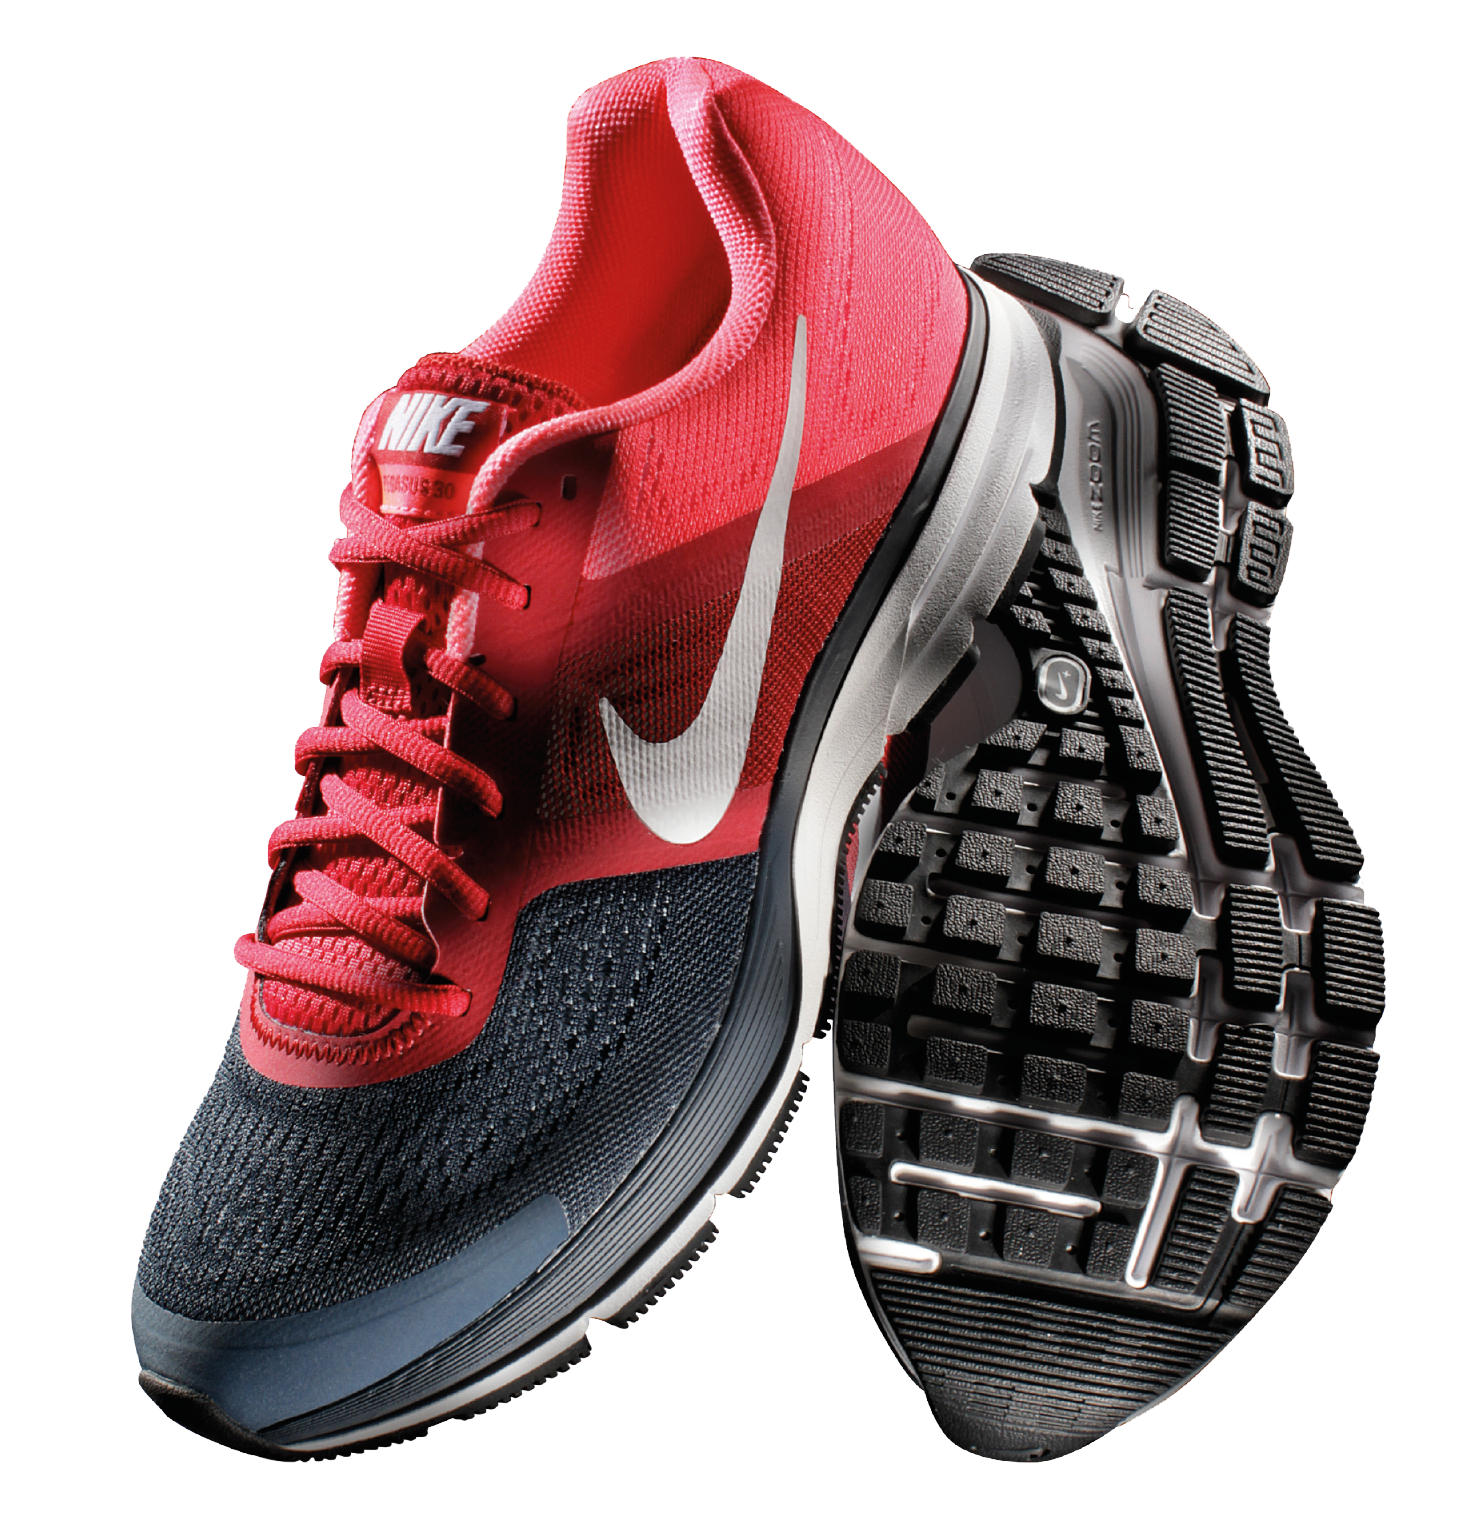 Download PNG image - Nike Shoes Transparent 444